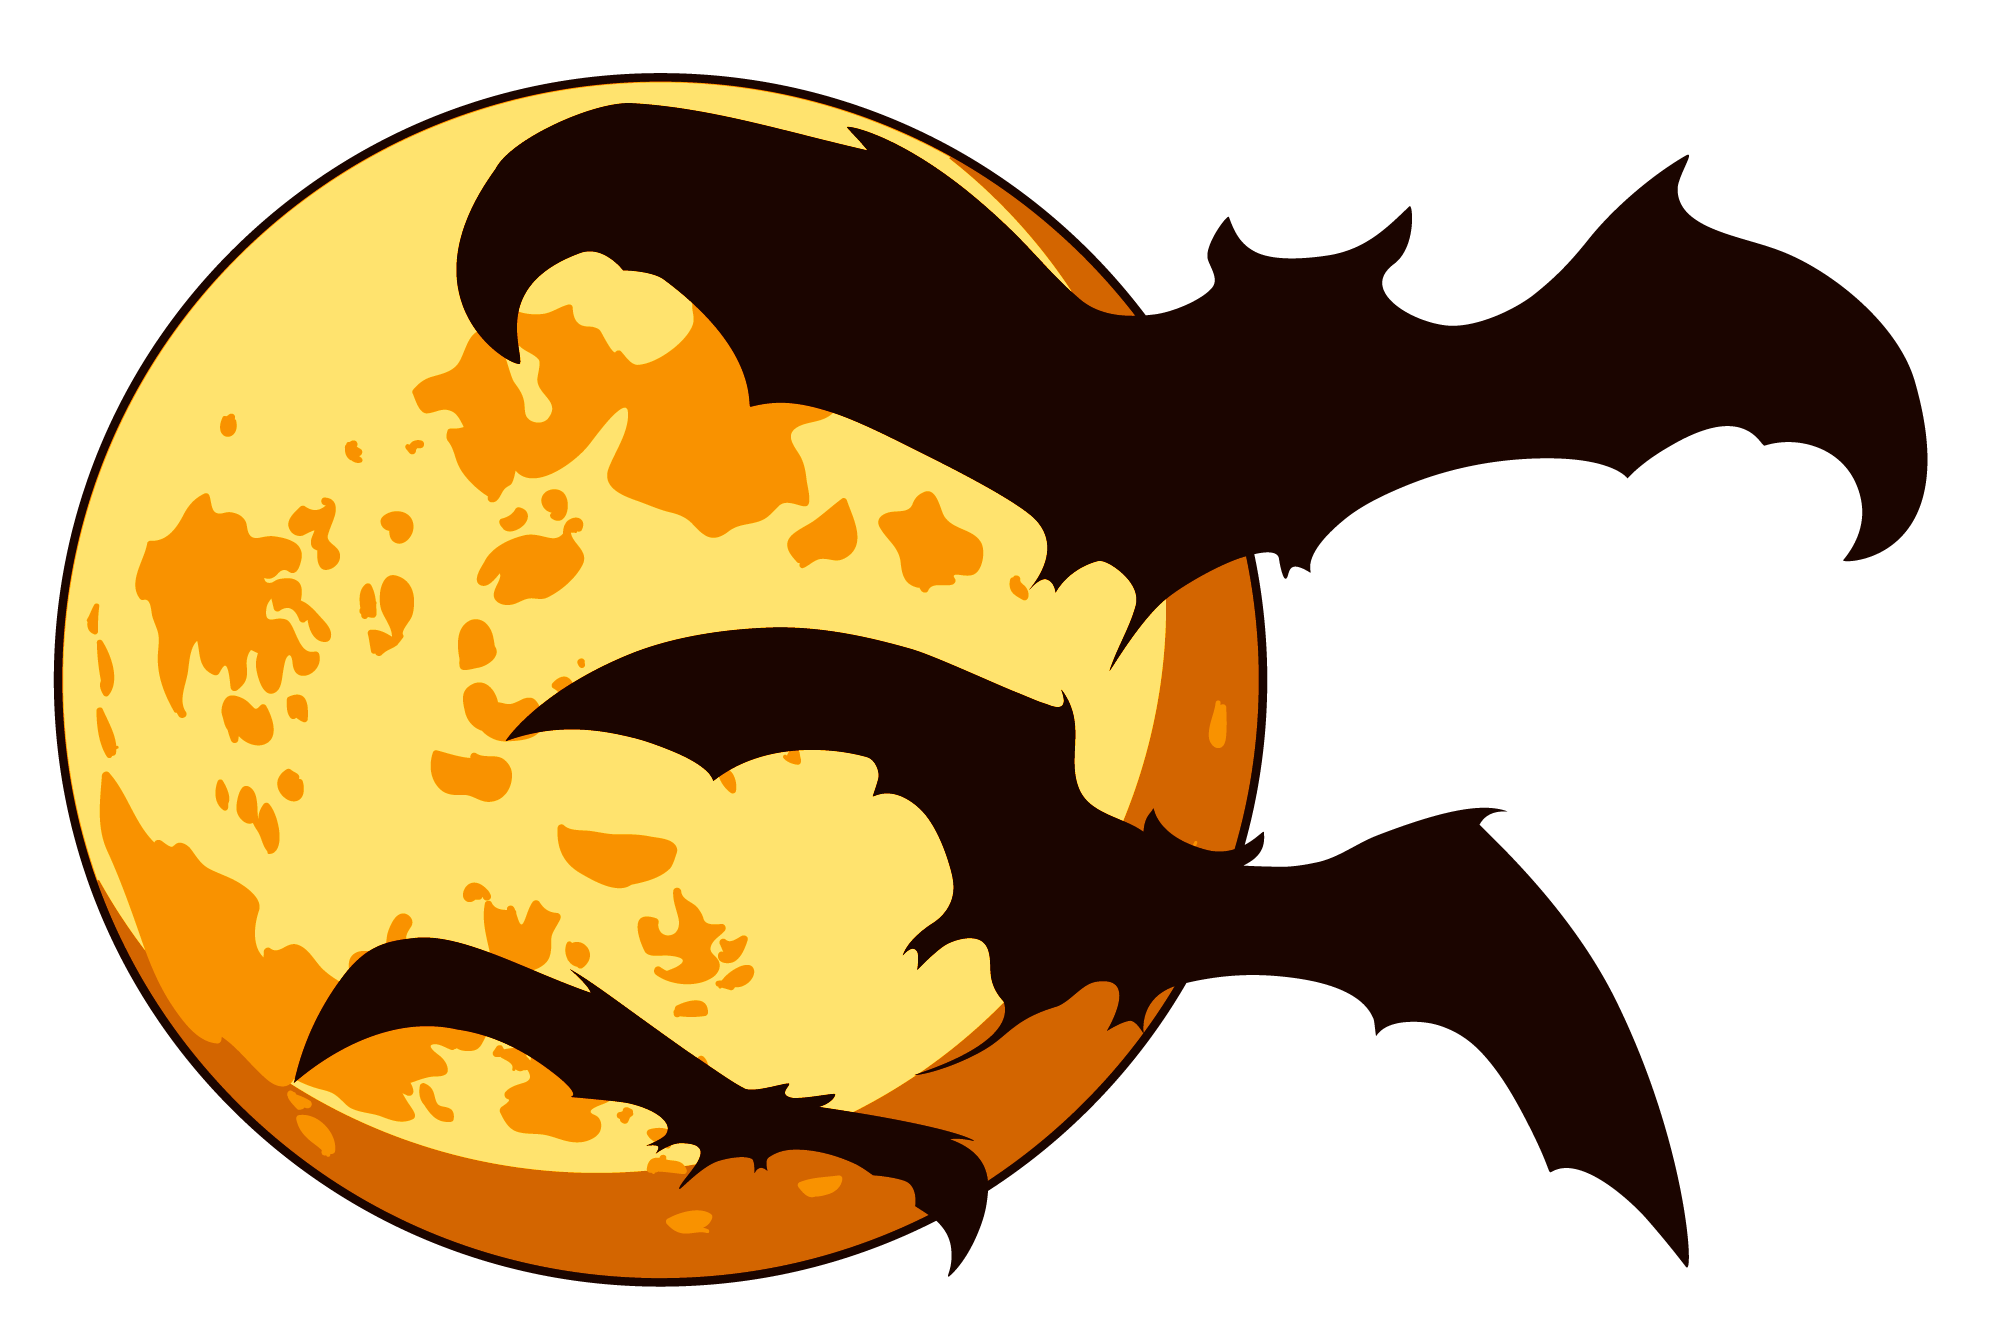 Festival clipart halloween. Moon at getdrawings com